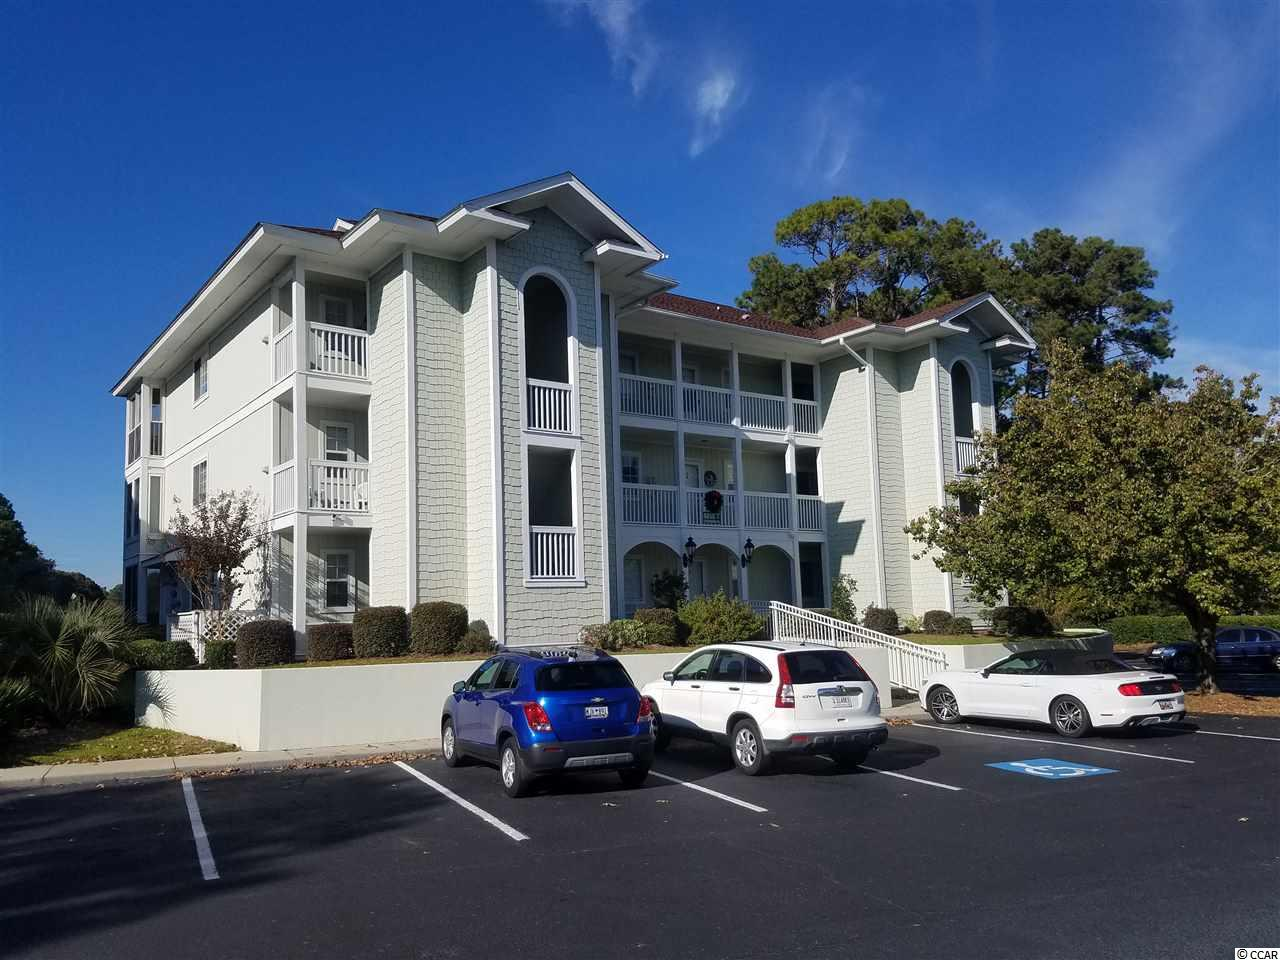 Condo in SPINNAKER BAY E : Little River South Carolina